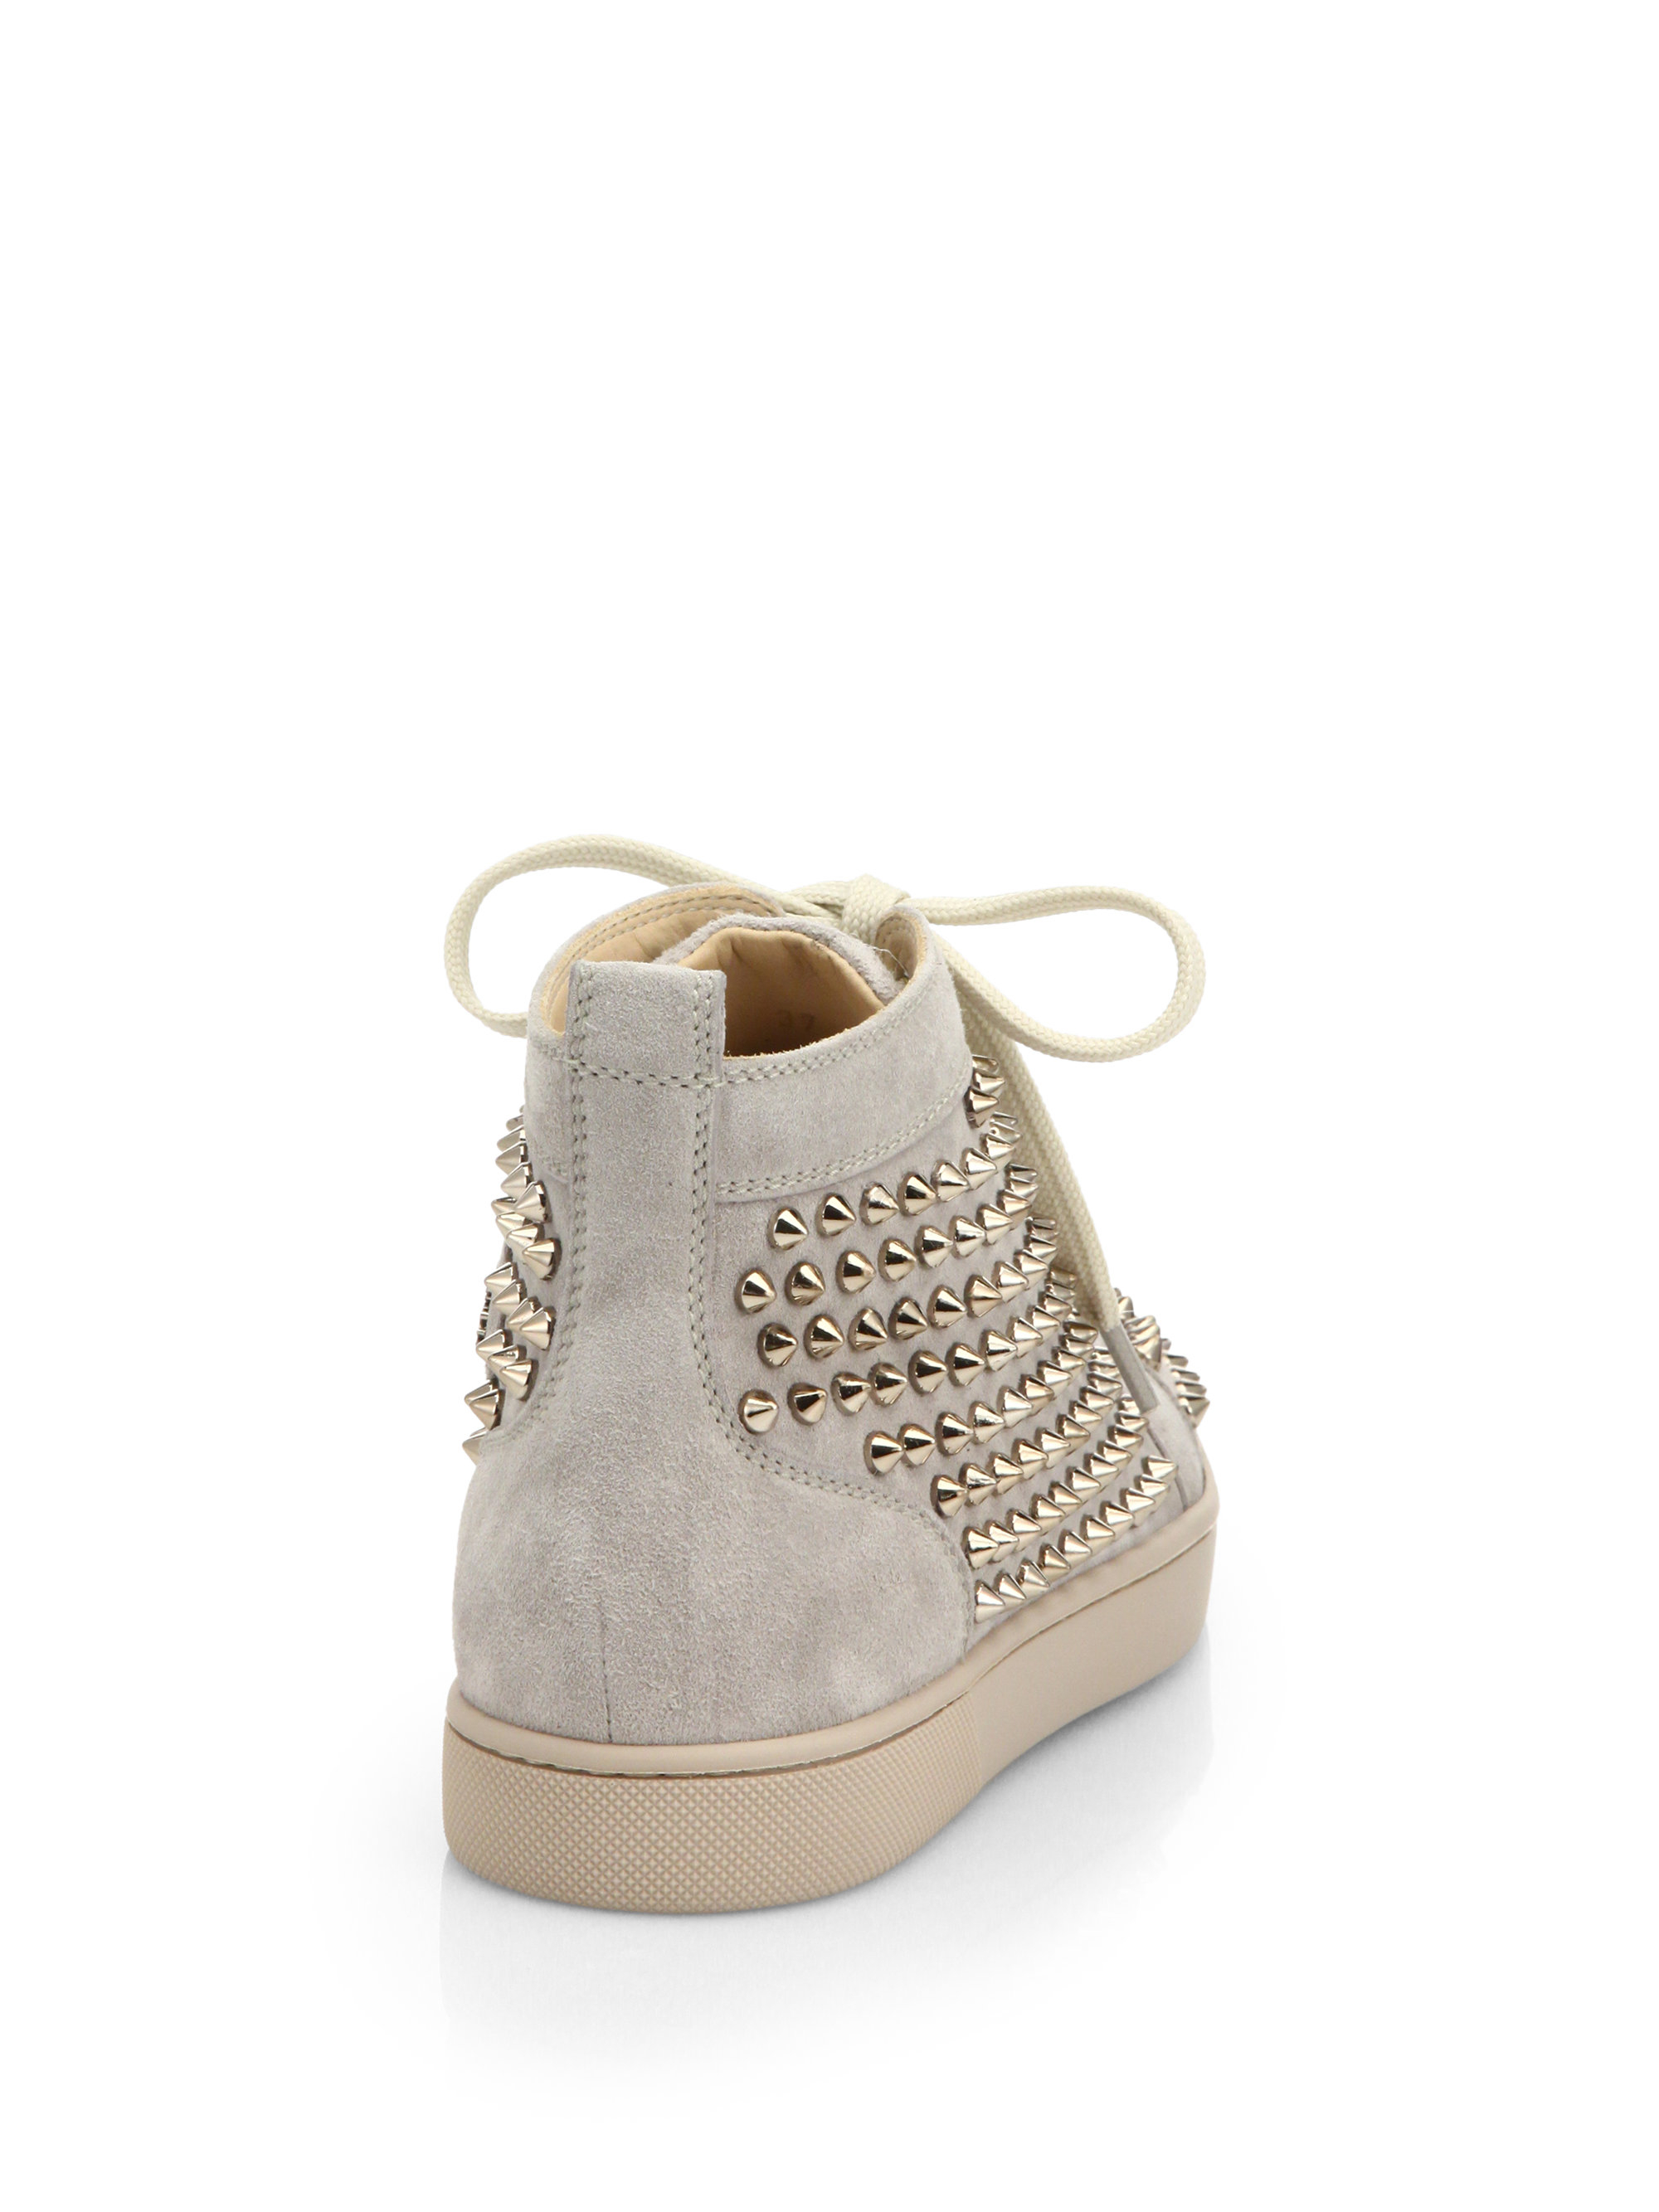 christian louboutin suede high-top sneakers | cosmetics digital ...